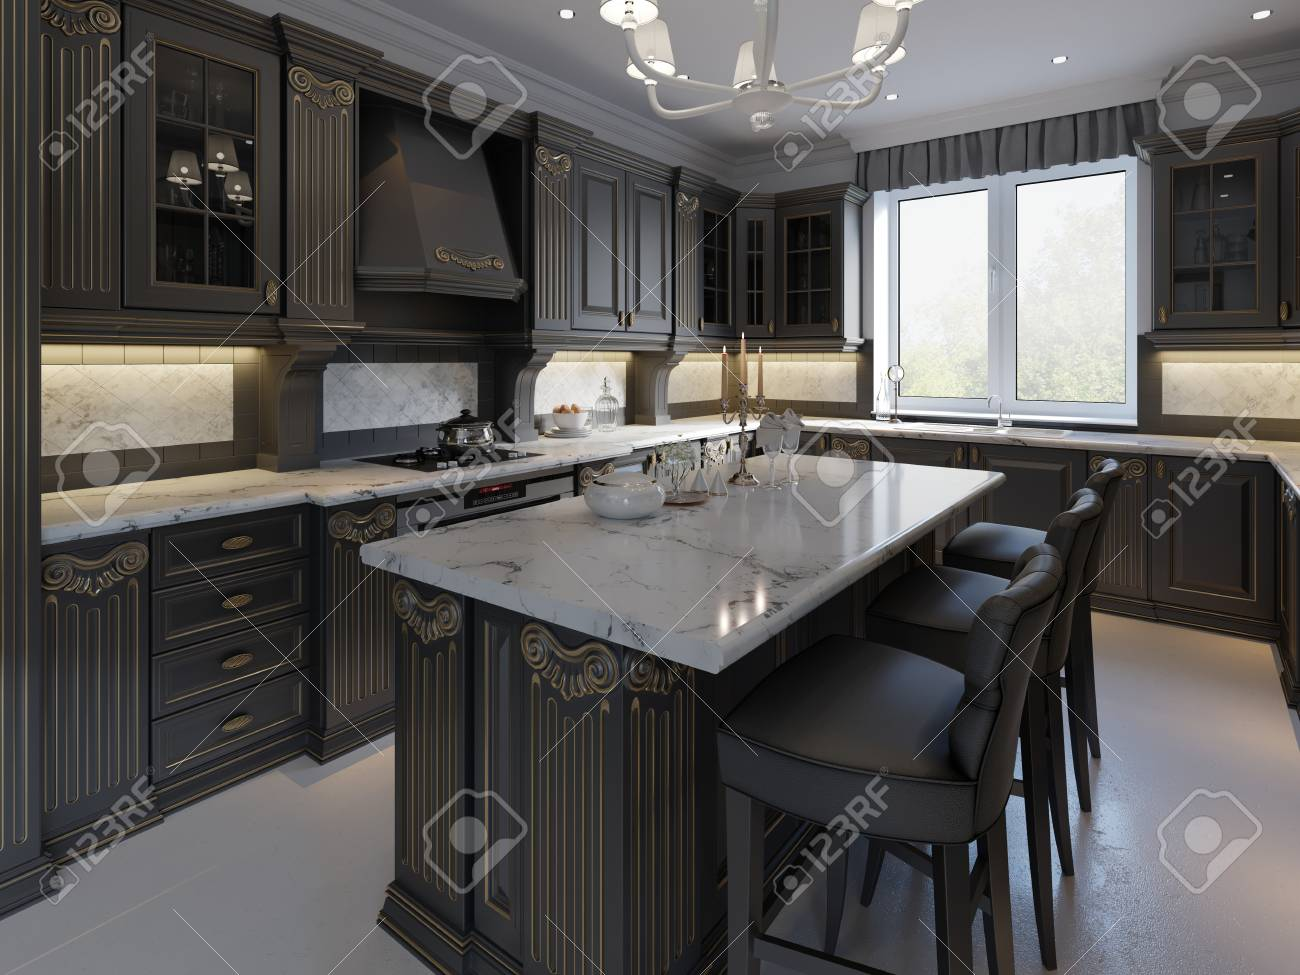 Black Bar Stools At Kitchen Island In Bright Living Room 3d